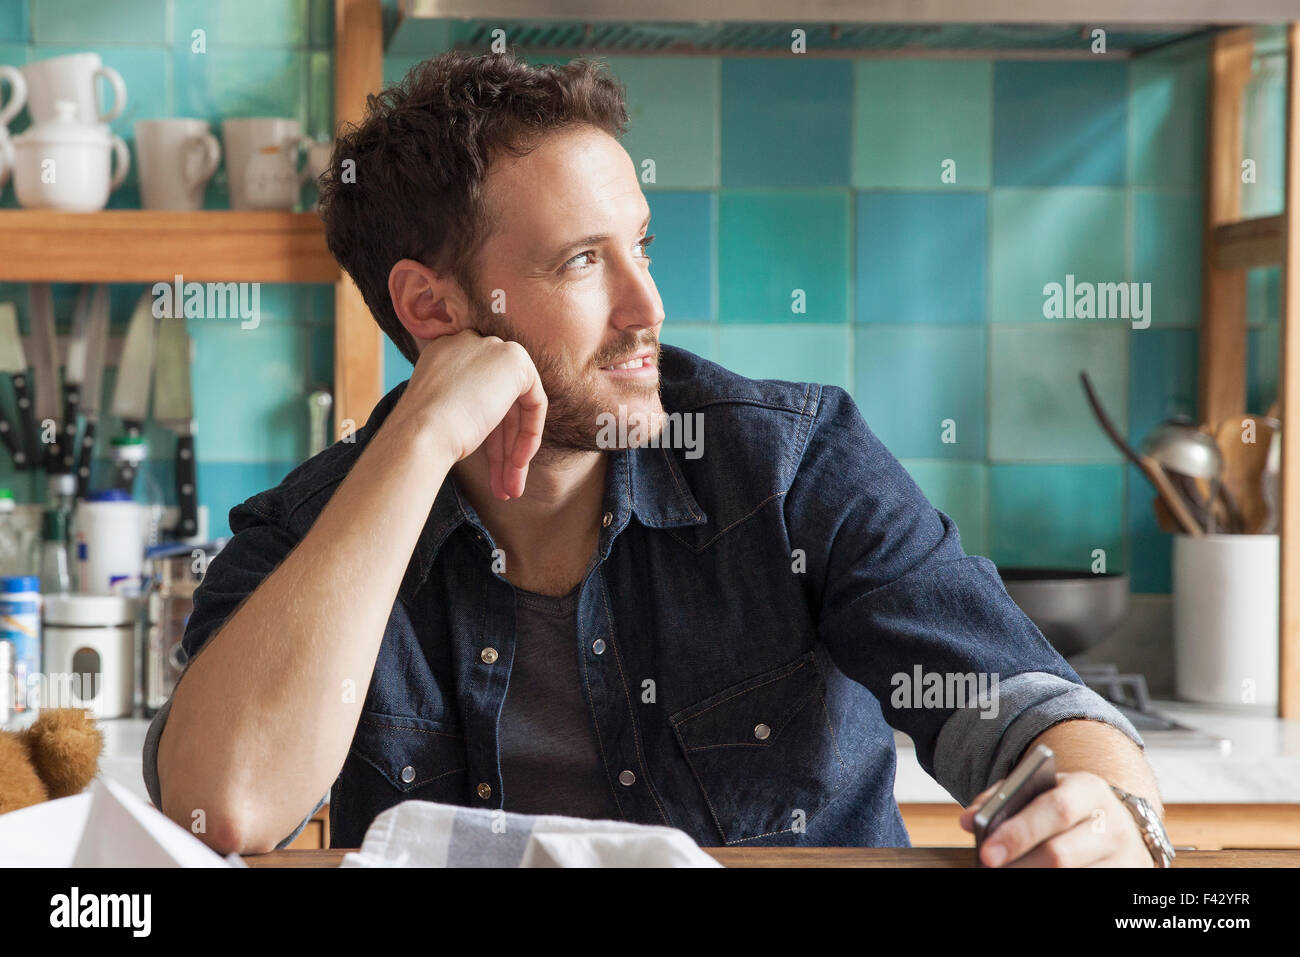 Man daydreaming in messy kitchen - Stock Image